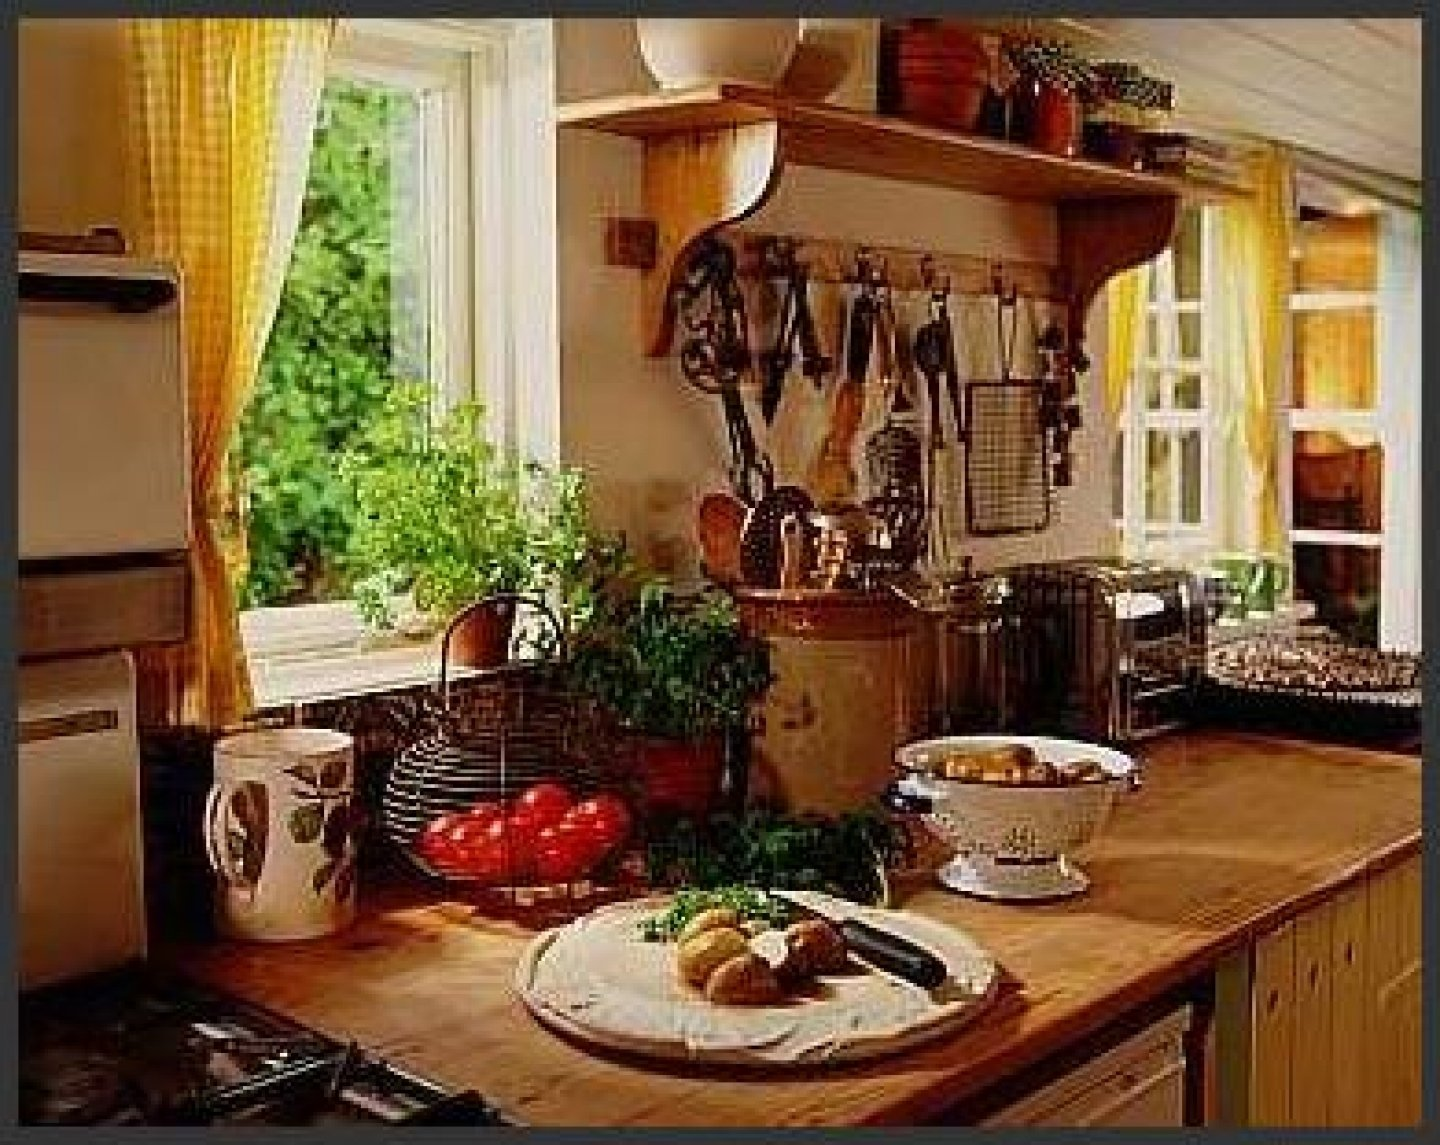 10 Fashionable French Country Kitchen Decorating Ideas decoration french country decor of country dekoration gigz 2020